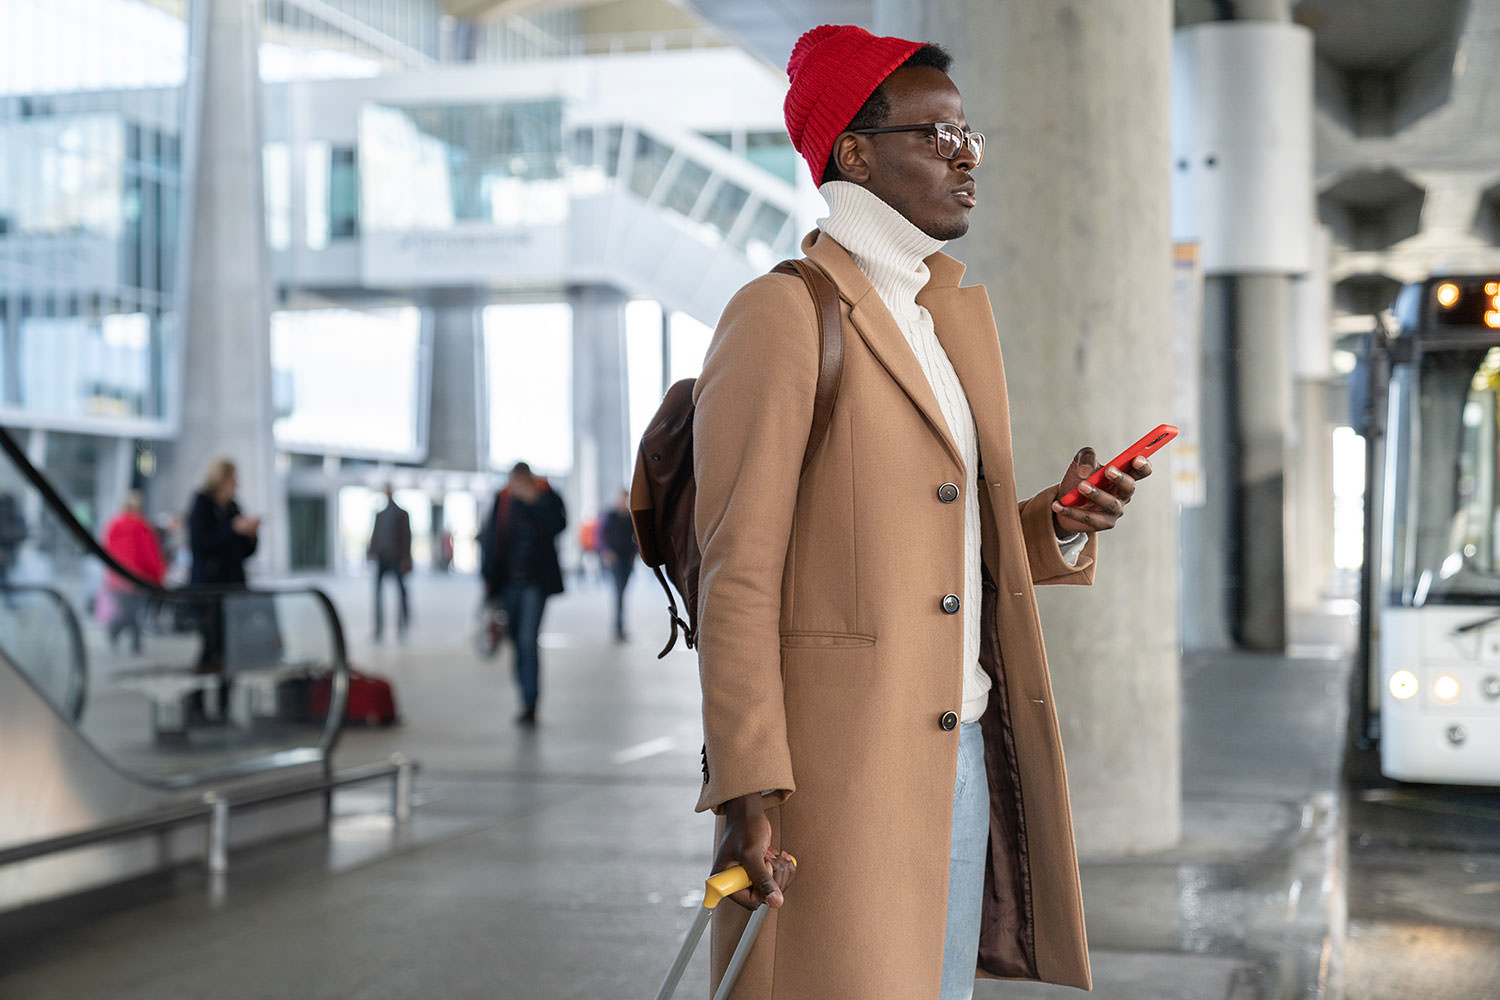 Man with red hat and cell phone.